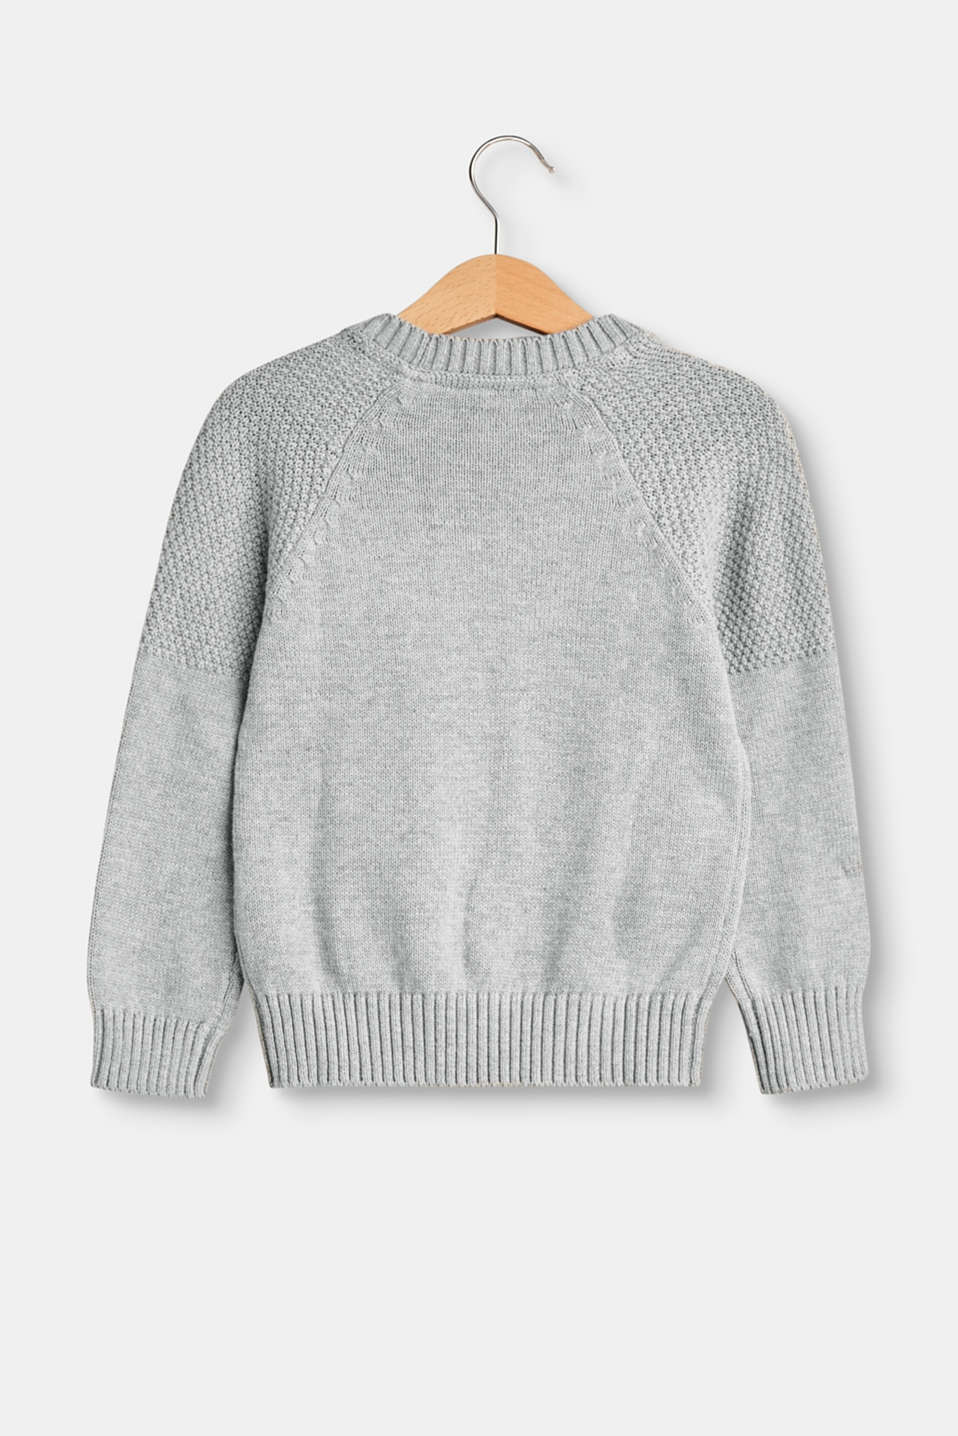 Texture mix jumper in 100% cotton